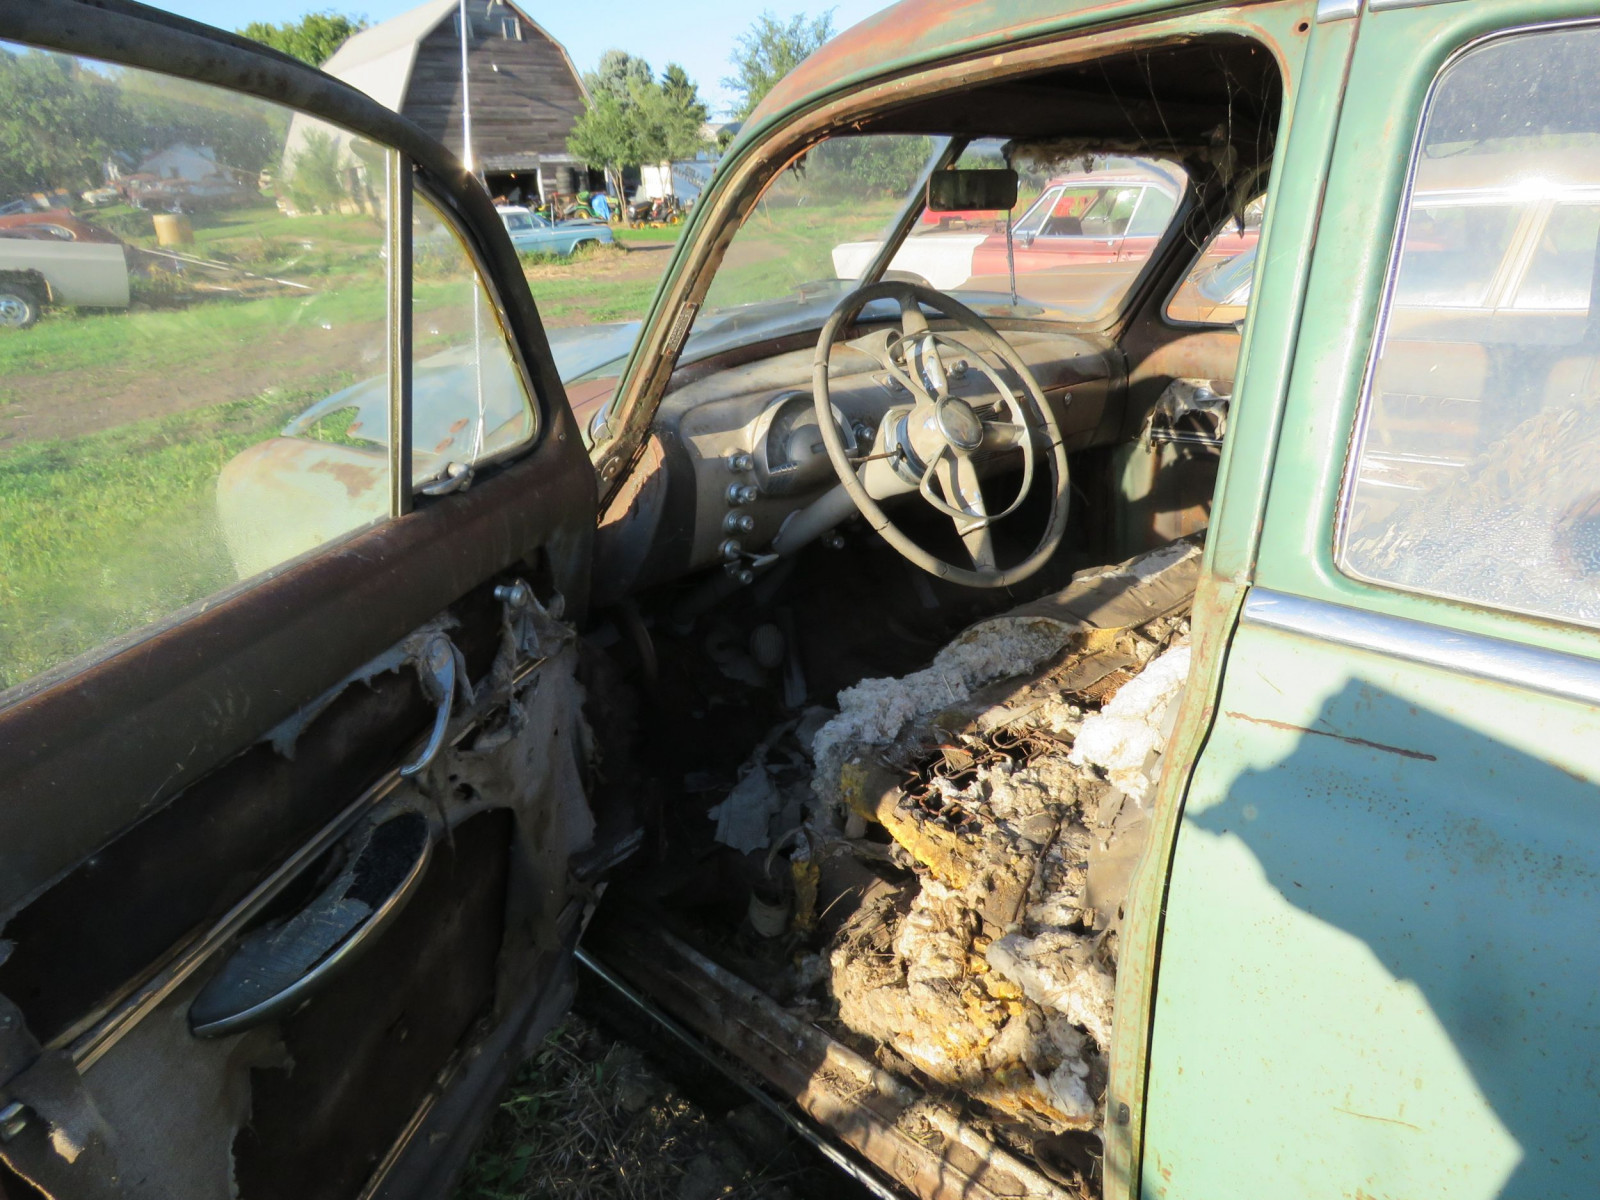 1949 Oldsmobile 4dr Sedan for Project or Parts - Image 4